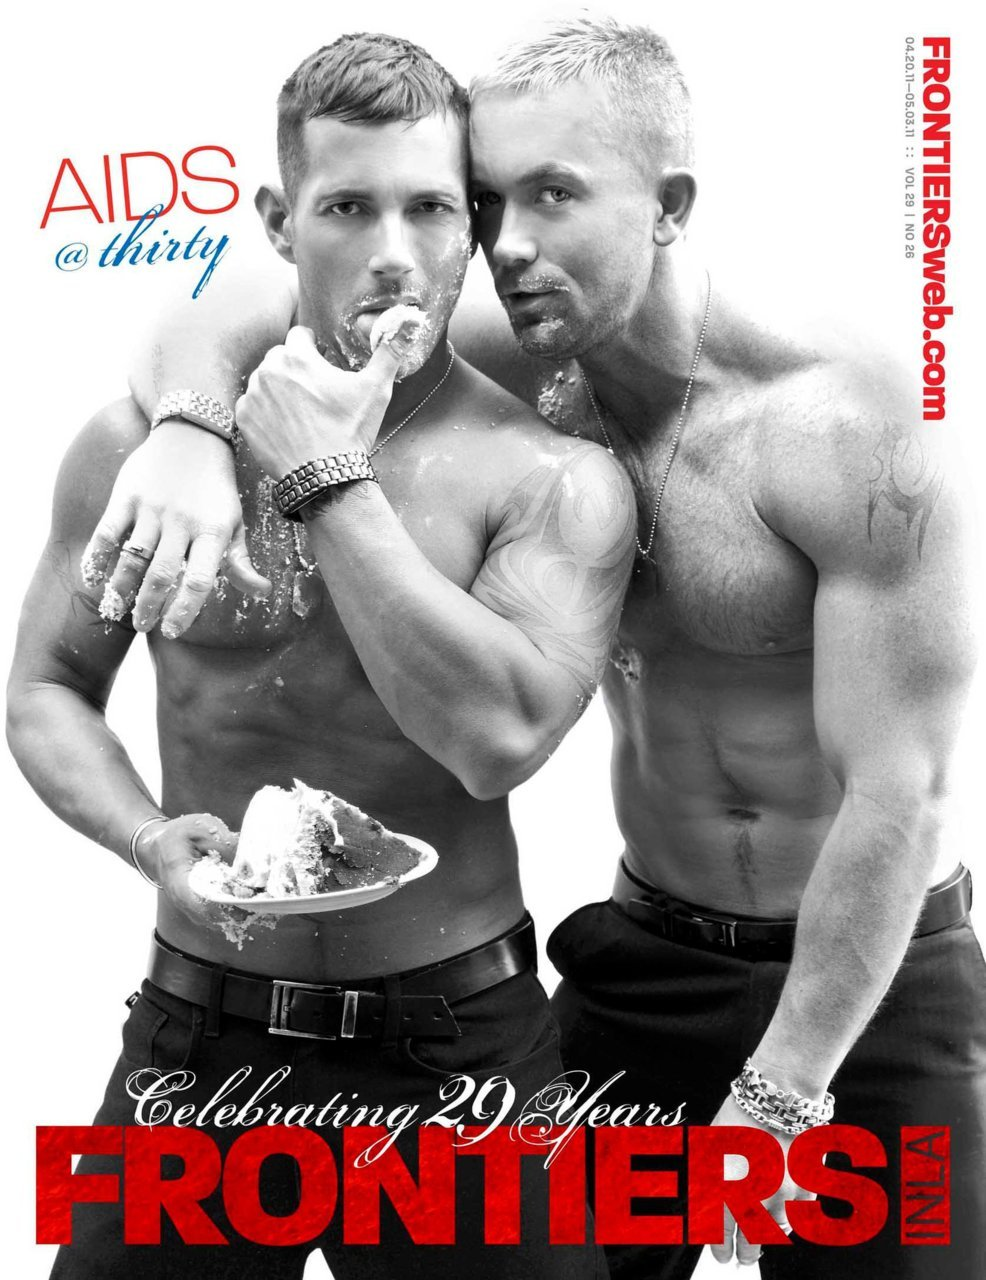 Frontiers Magazine 29th Anniversary cover with Matt and Cameron - out Monday in SoCal